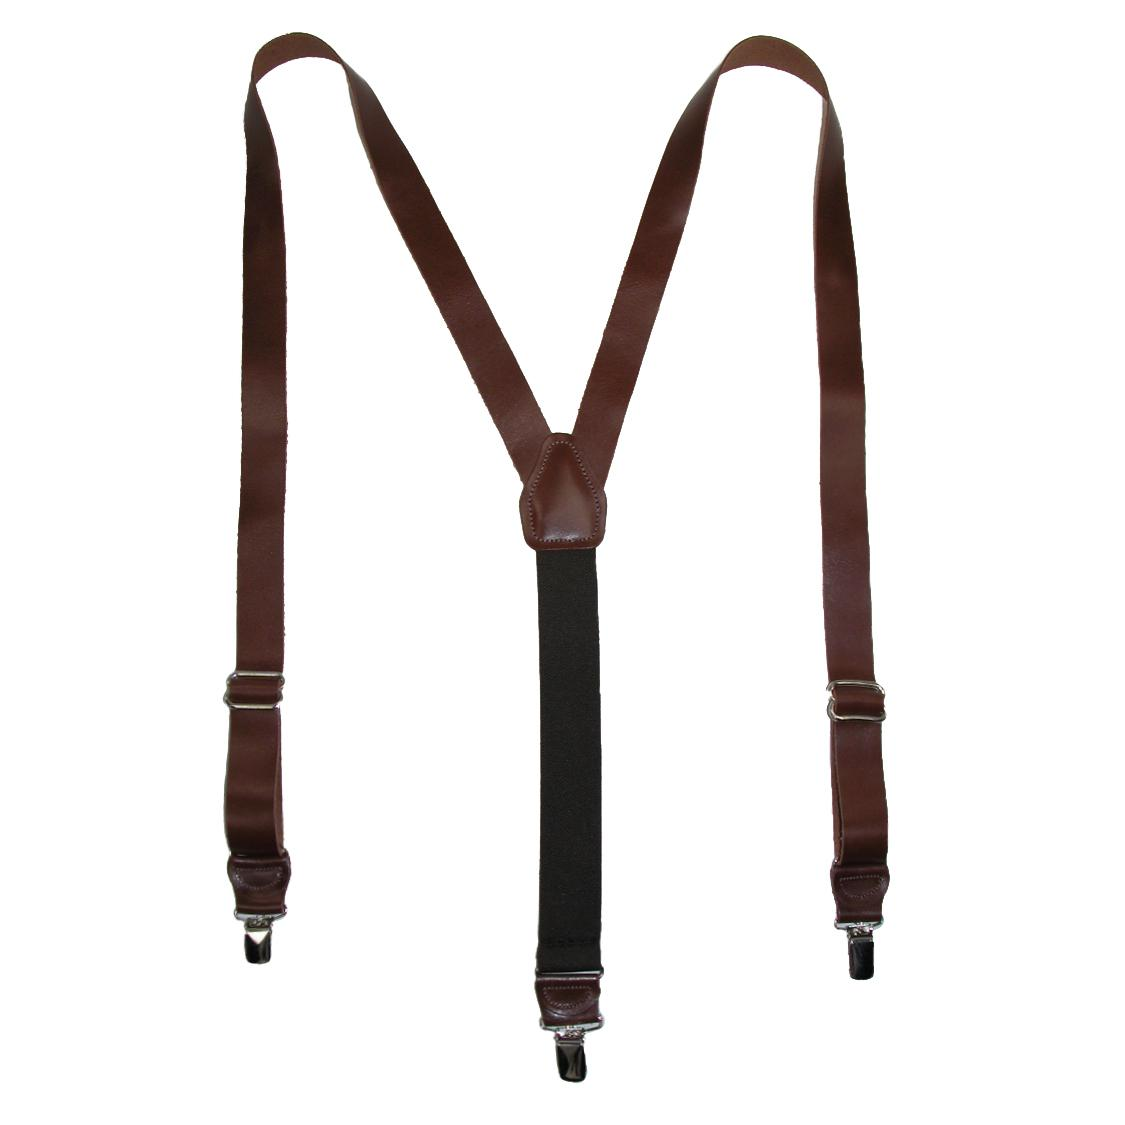 CTM_Men's_Leather_Clip-End_1_Inch_Suspenders_-_Brown_one_size